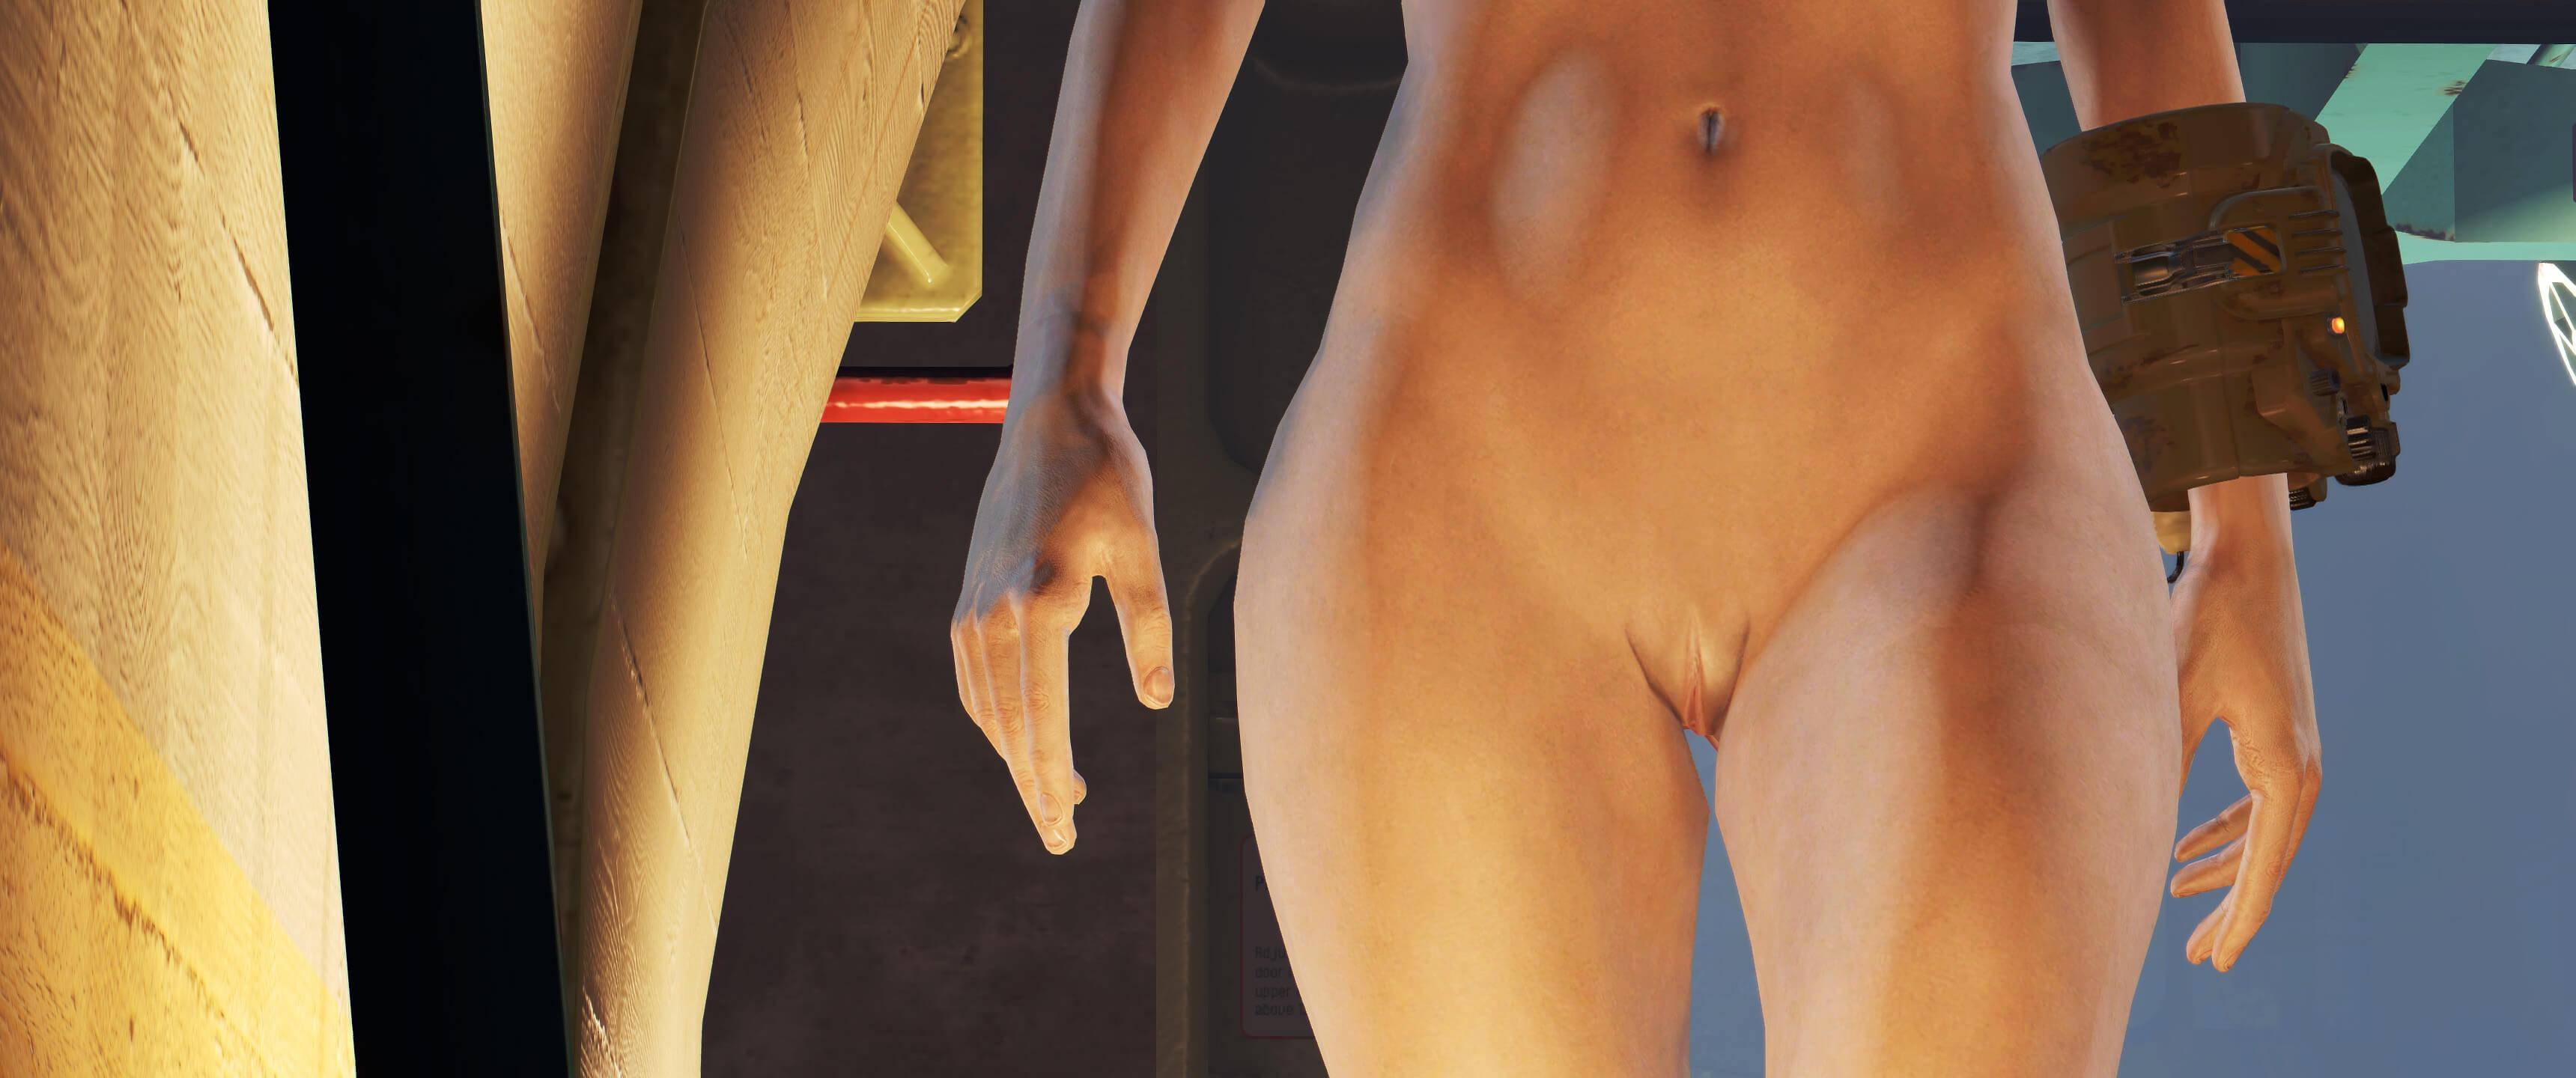 Fallout 4 Nude Mods Get Even Better